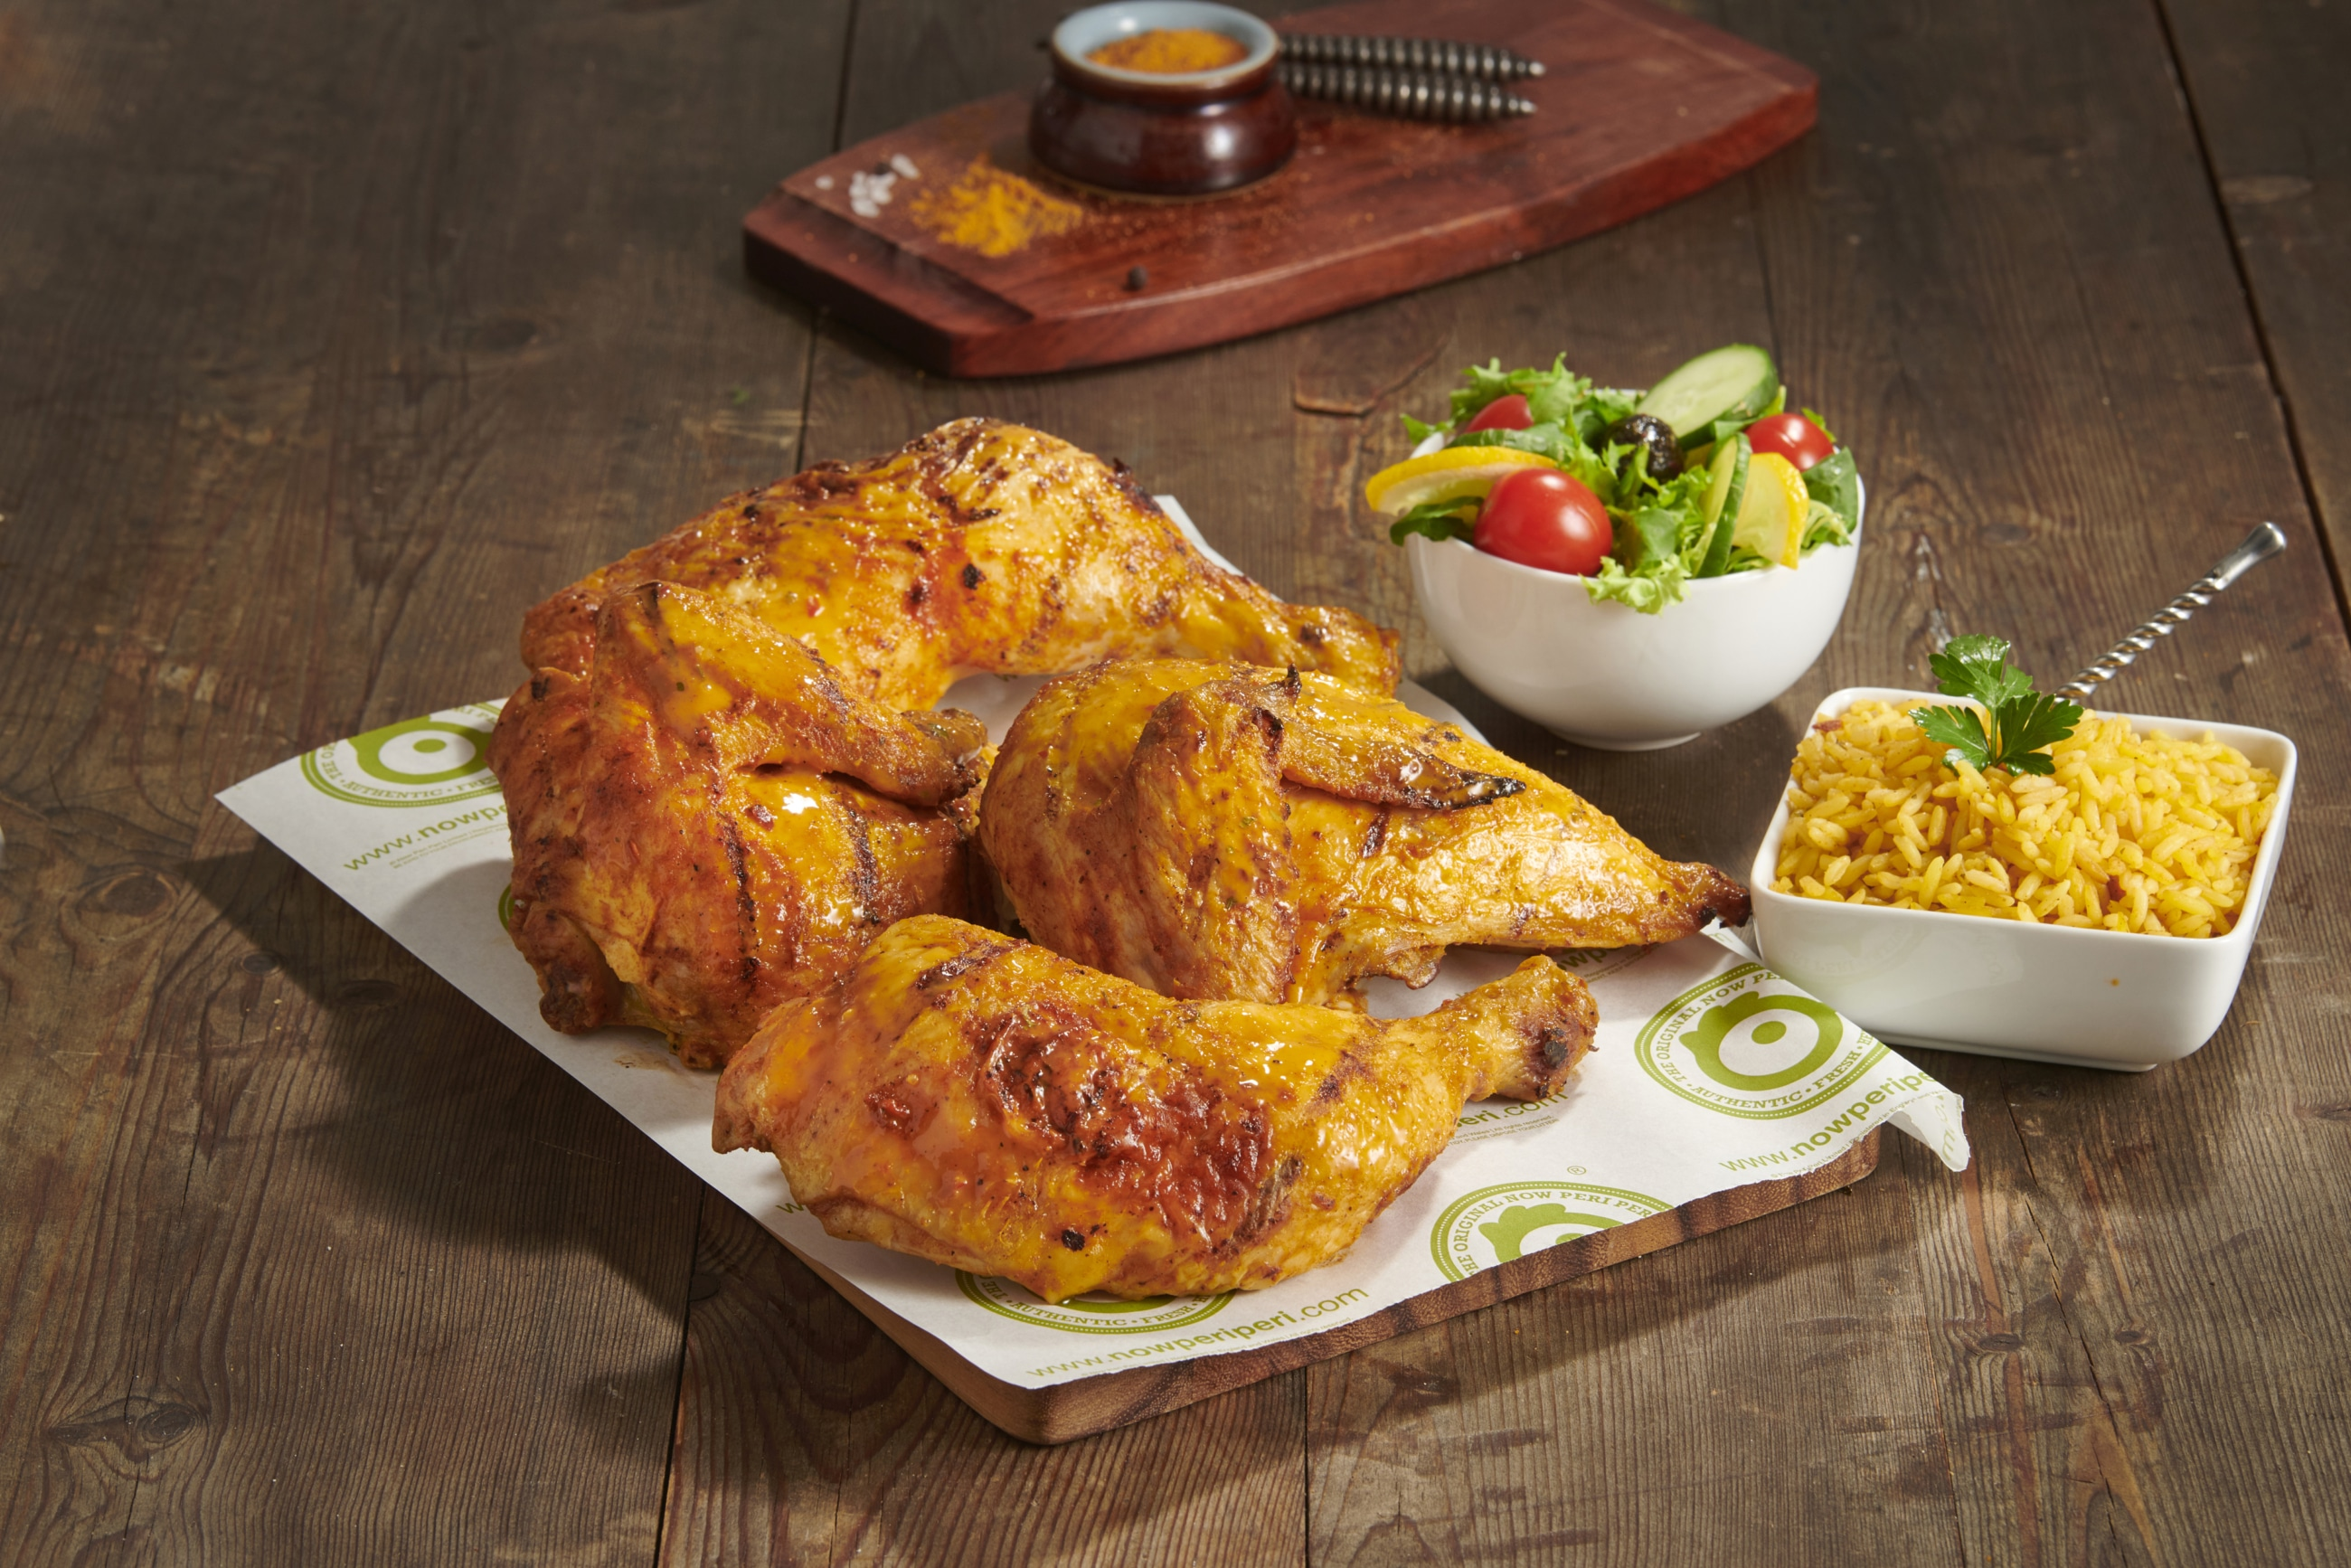 Now Peri Peri Whole Chicken Platter with 2 Sides